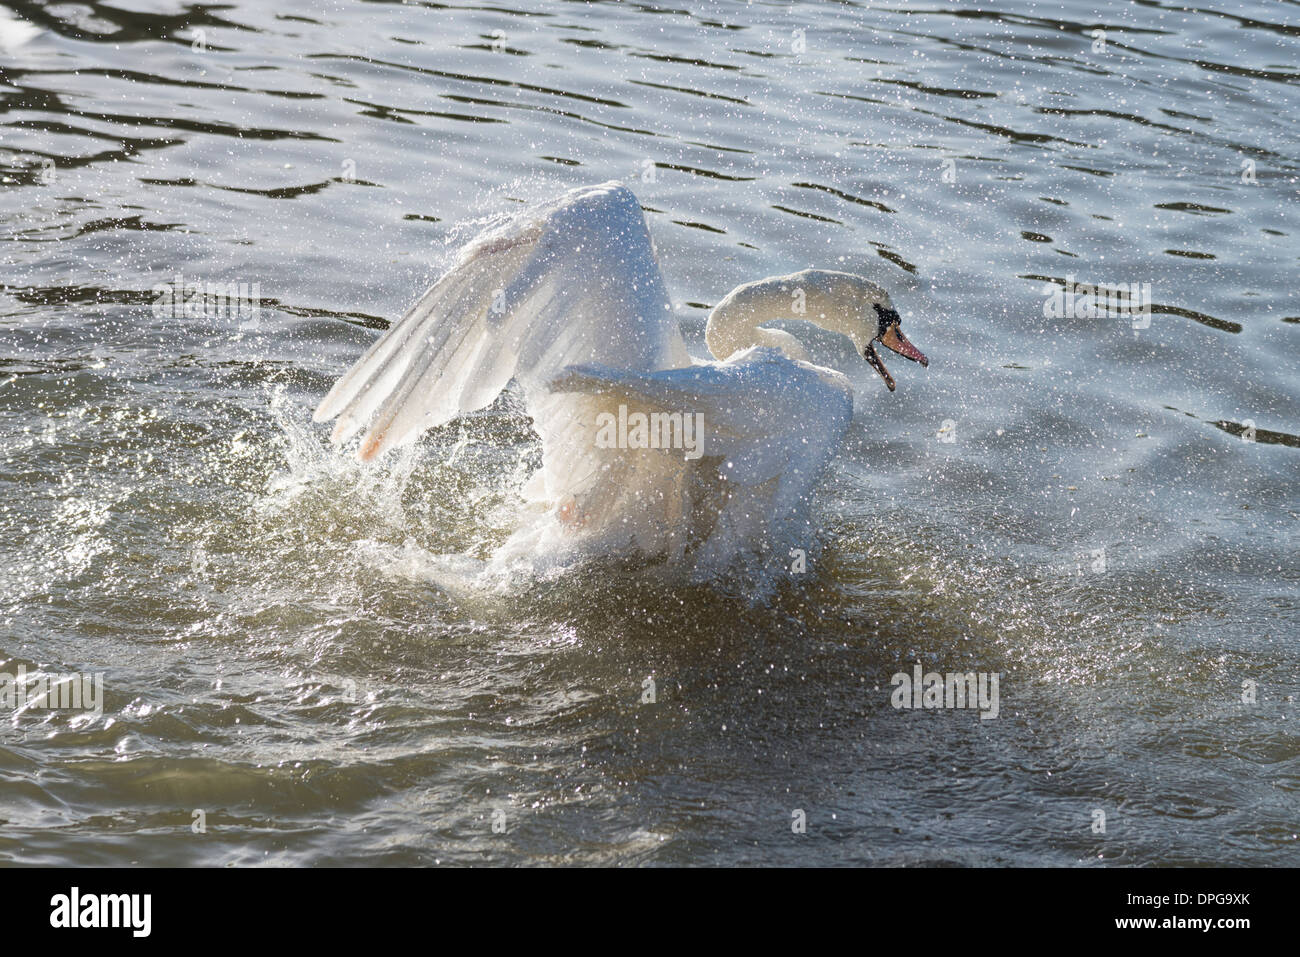 A mute swan washing and flapping its wings on a river. - Stock Image